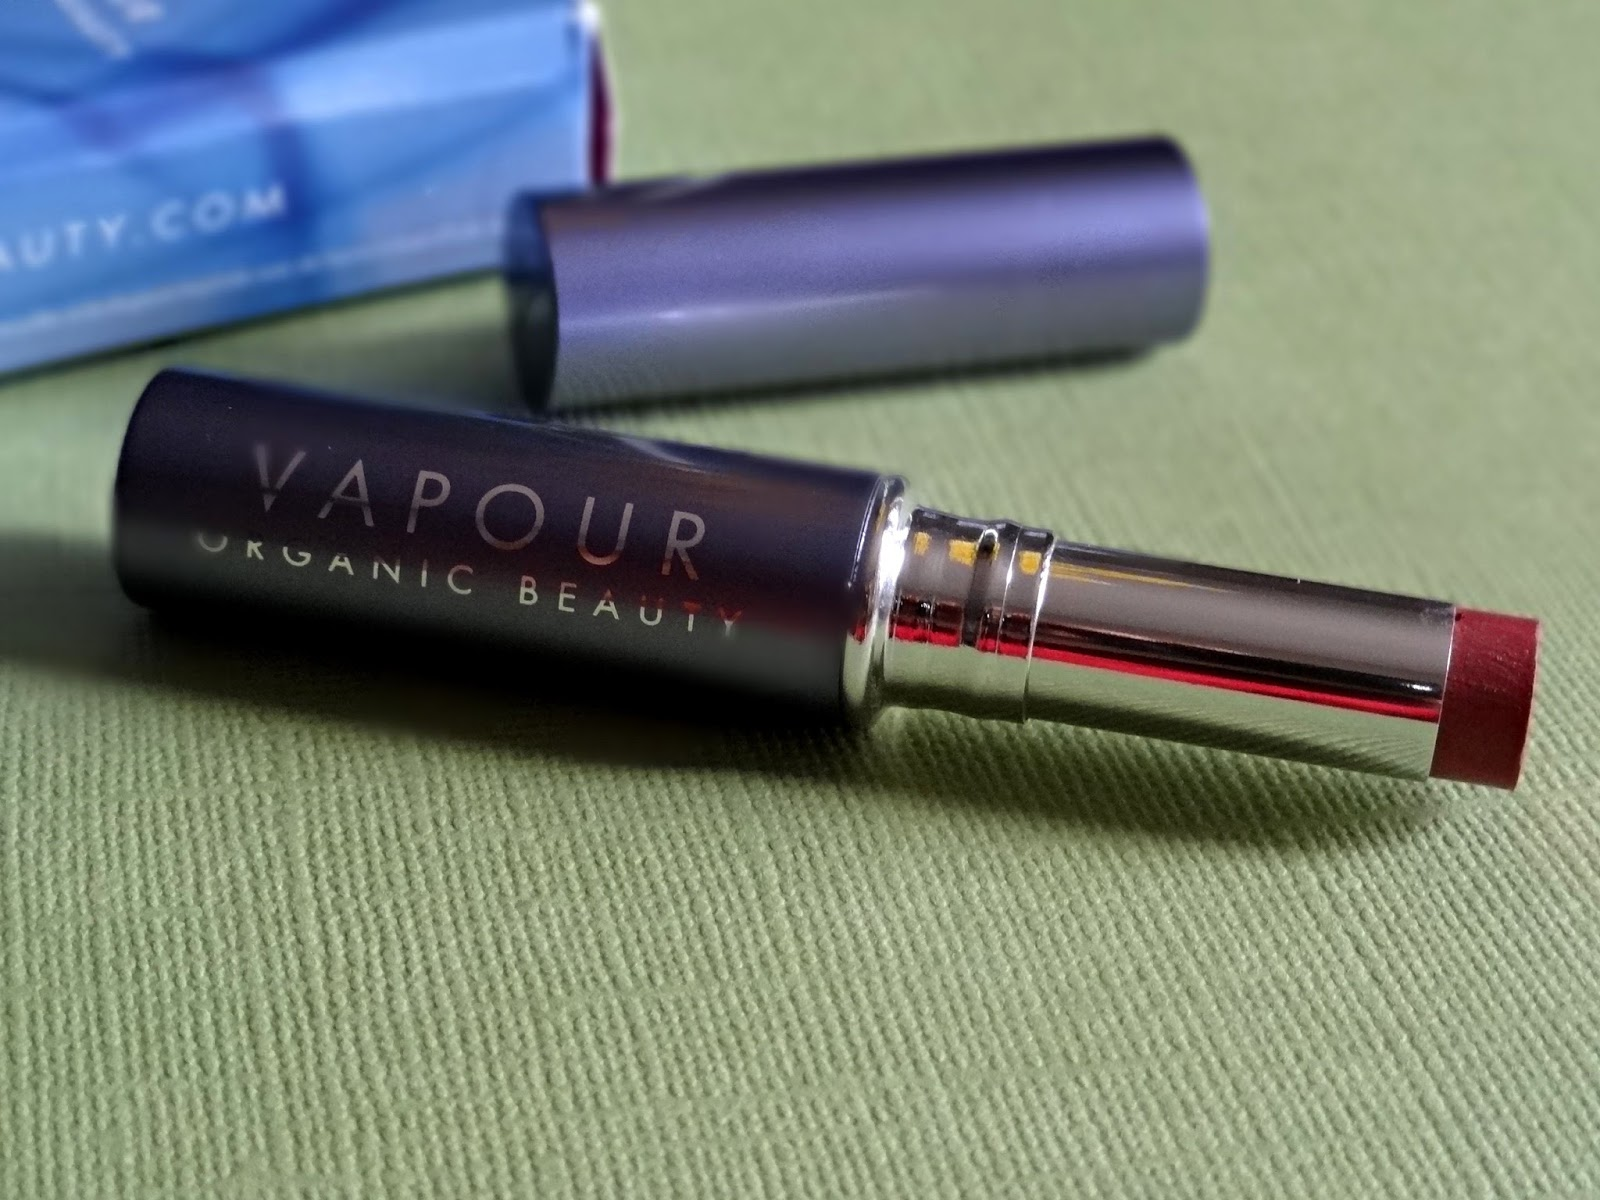 Vapour Organic Beauty Siren Lipstick in Tempt Review, Photos, Swatches